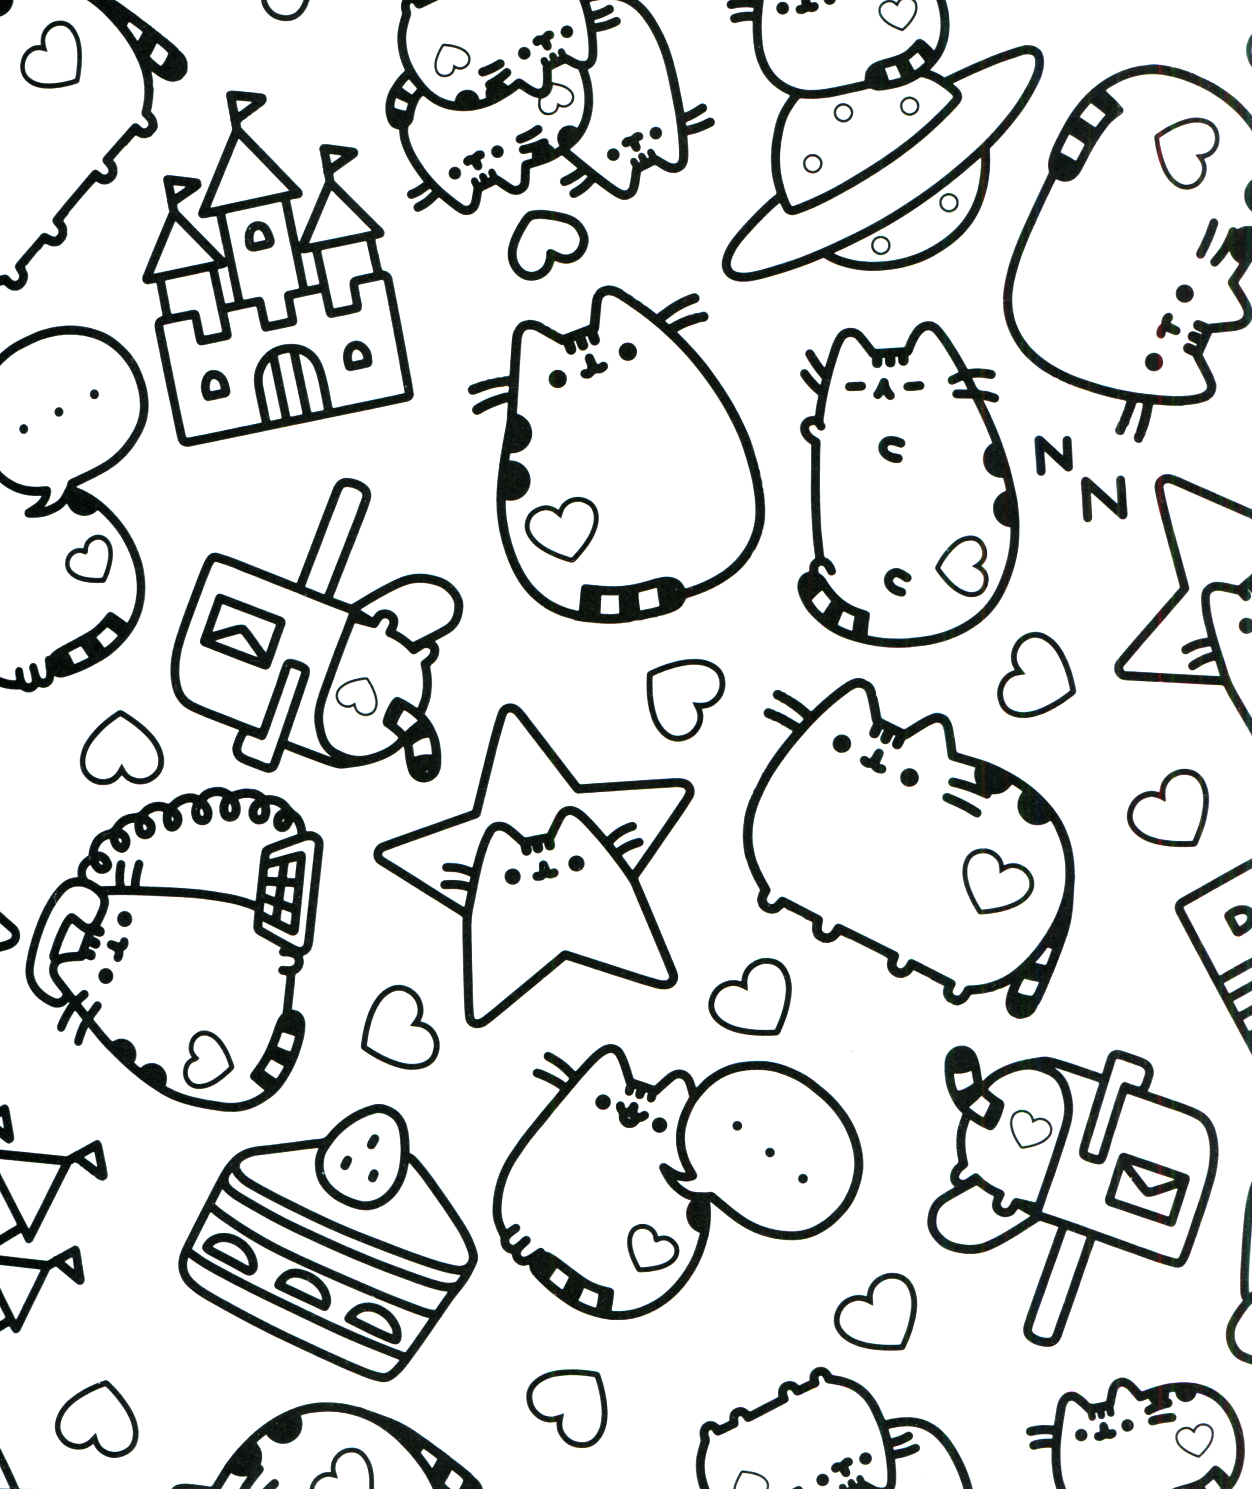 Pusheen Coloring Book Pusheen Pusheen the Cat | Other crafty stuff ...